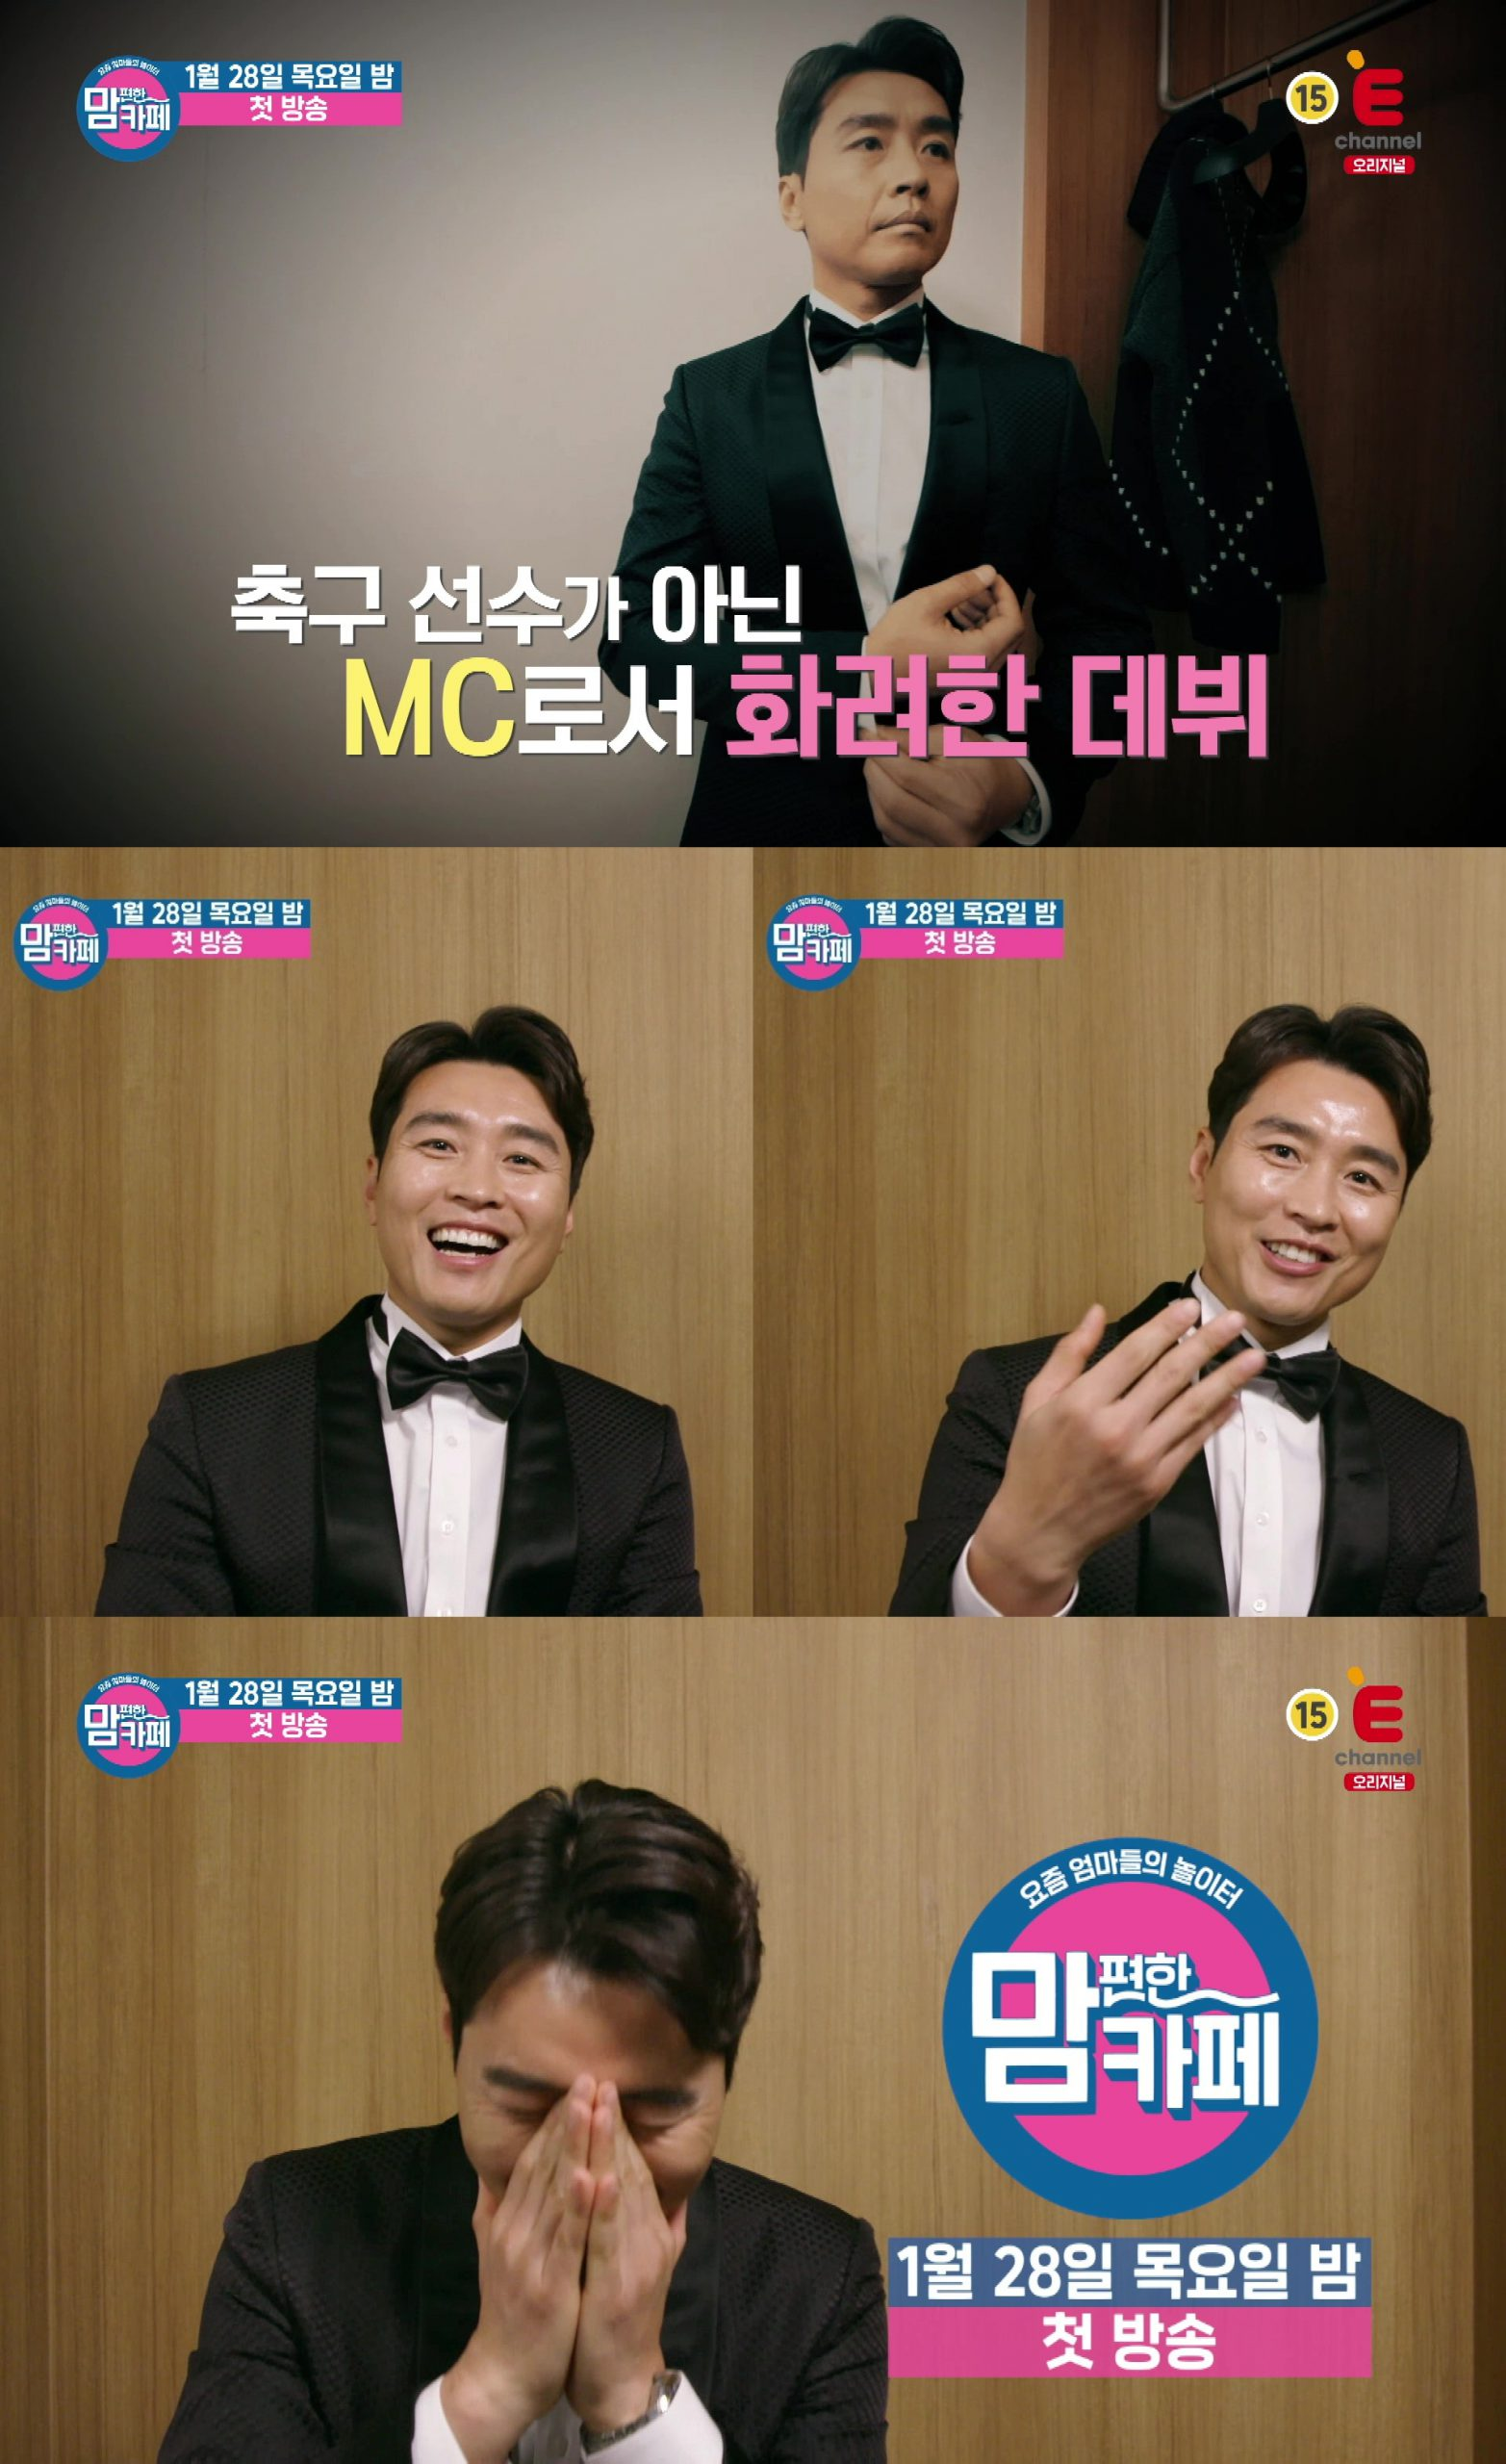 Lee Dong-guk's MC debut 'Comfortable Cafe' teaser released... First room on the 28th